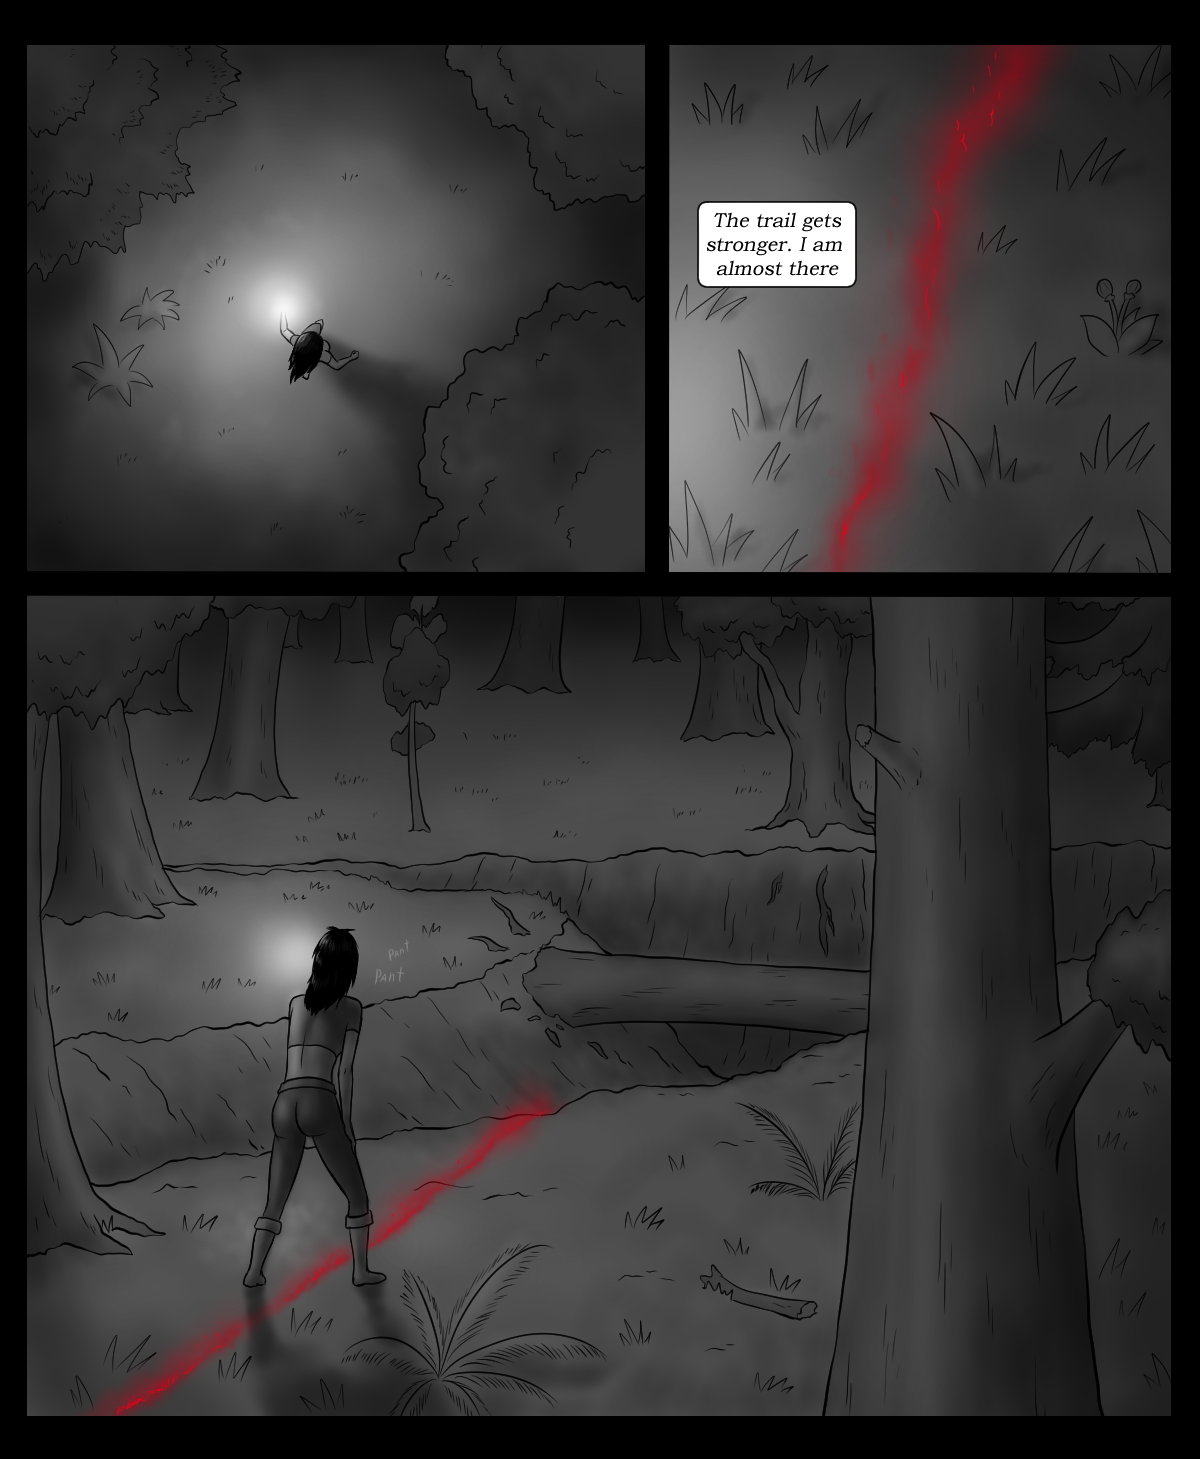 Page 50 - The path that leads down